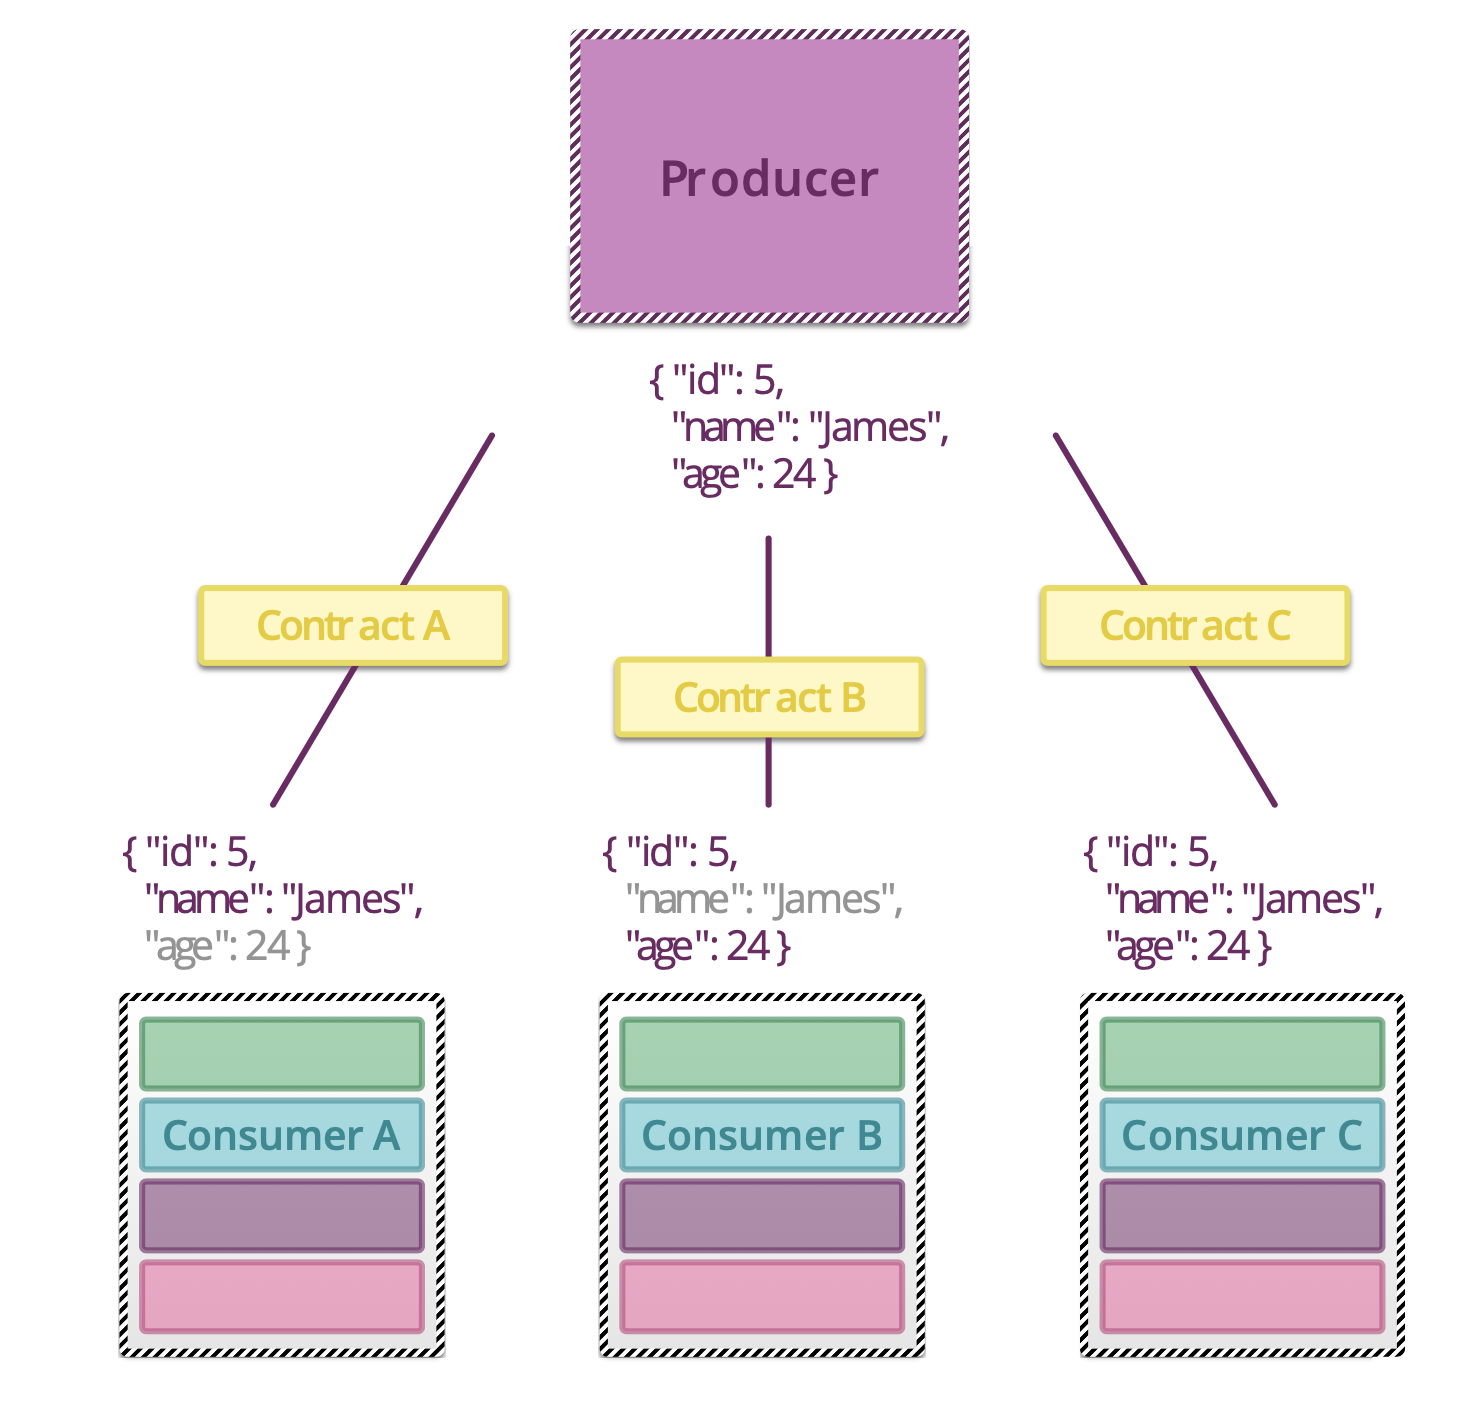 ../../_images/testing-microservices-11.png